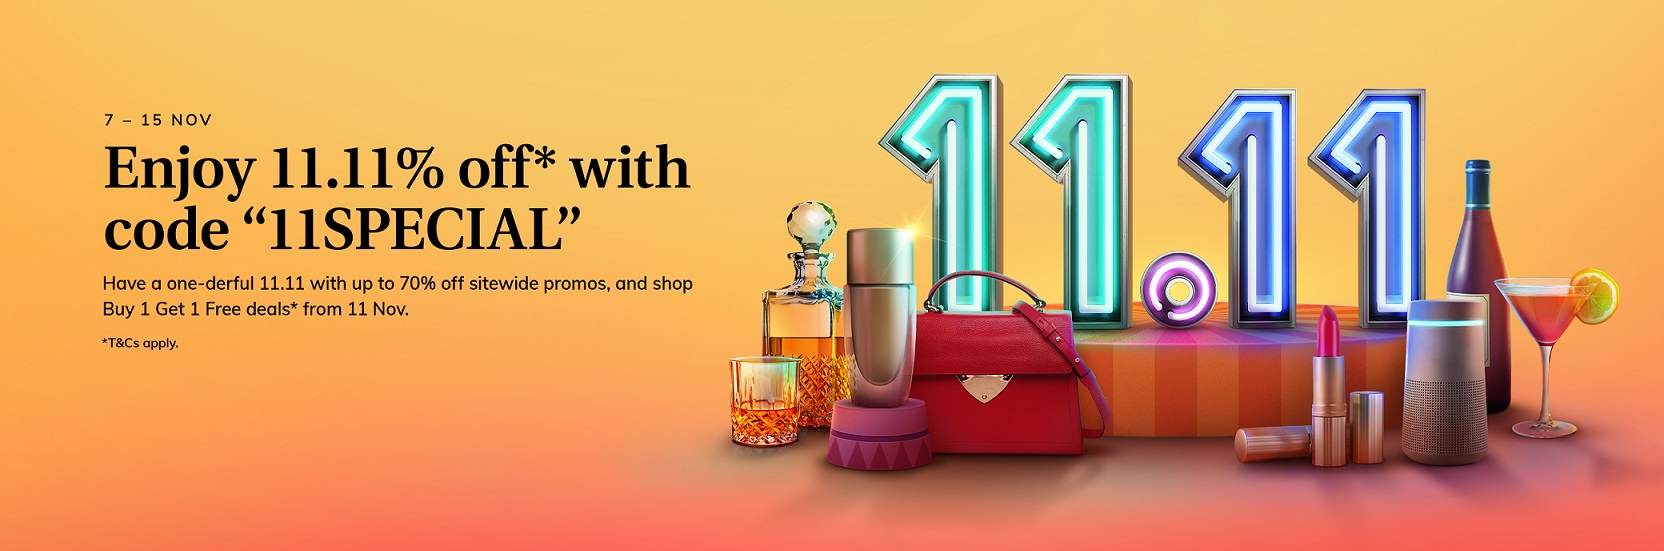 Go Big With iShopChangis 7th Anniversary and 11.11 Sales With Exclusive Discounts and Promotions